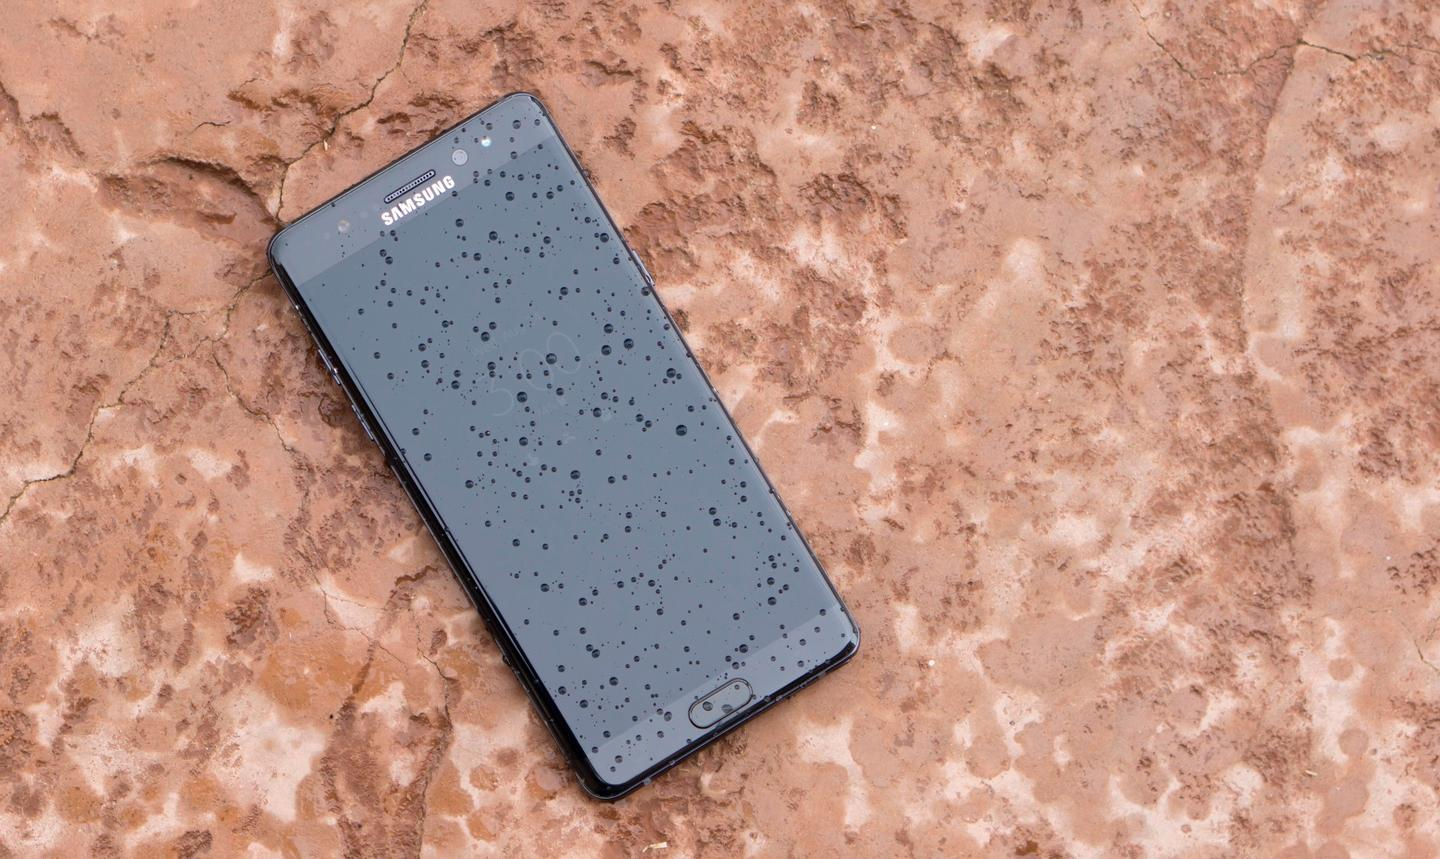 The Note 7 showing off its IP68 water resistance